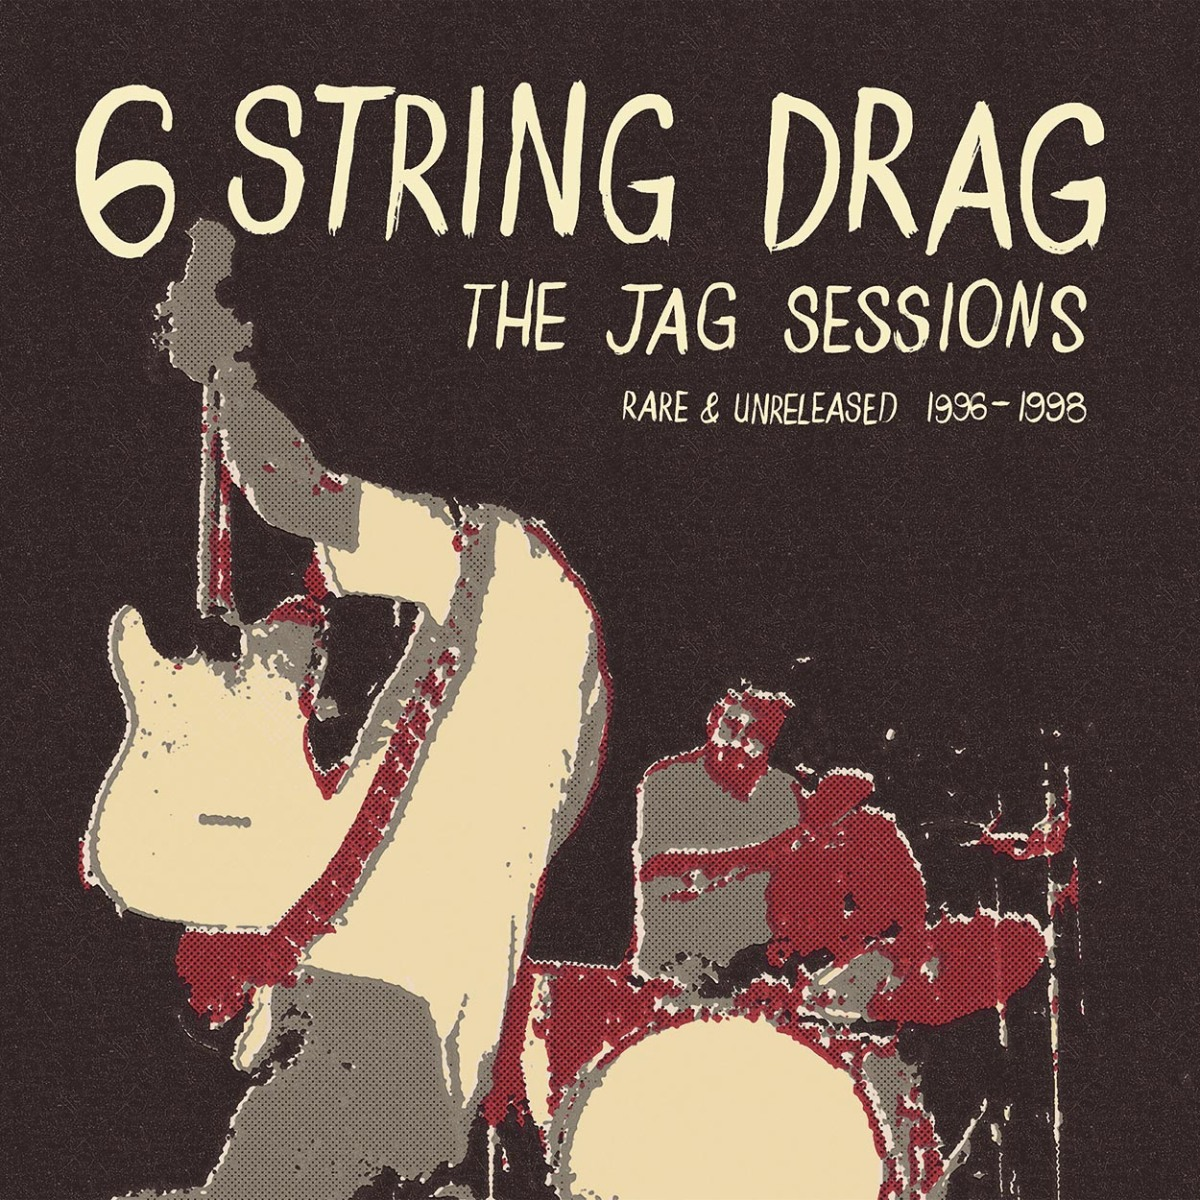 The Jag Sessions: Rare & Unreleased 1996-1998 -  Kenny Roby and 6 String Drag (reviewed by Dave Franklin)